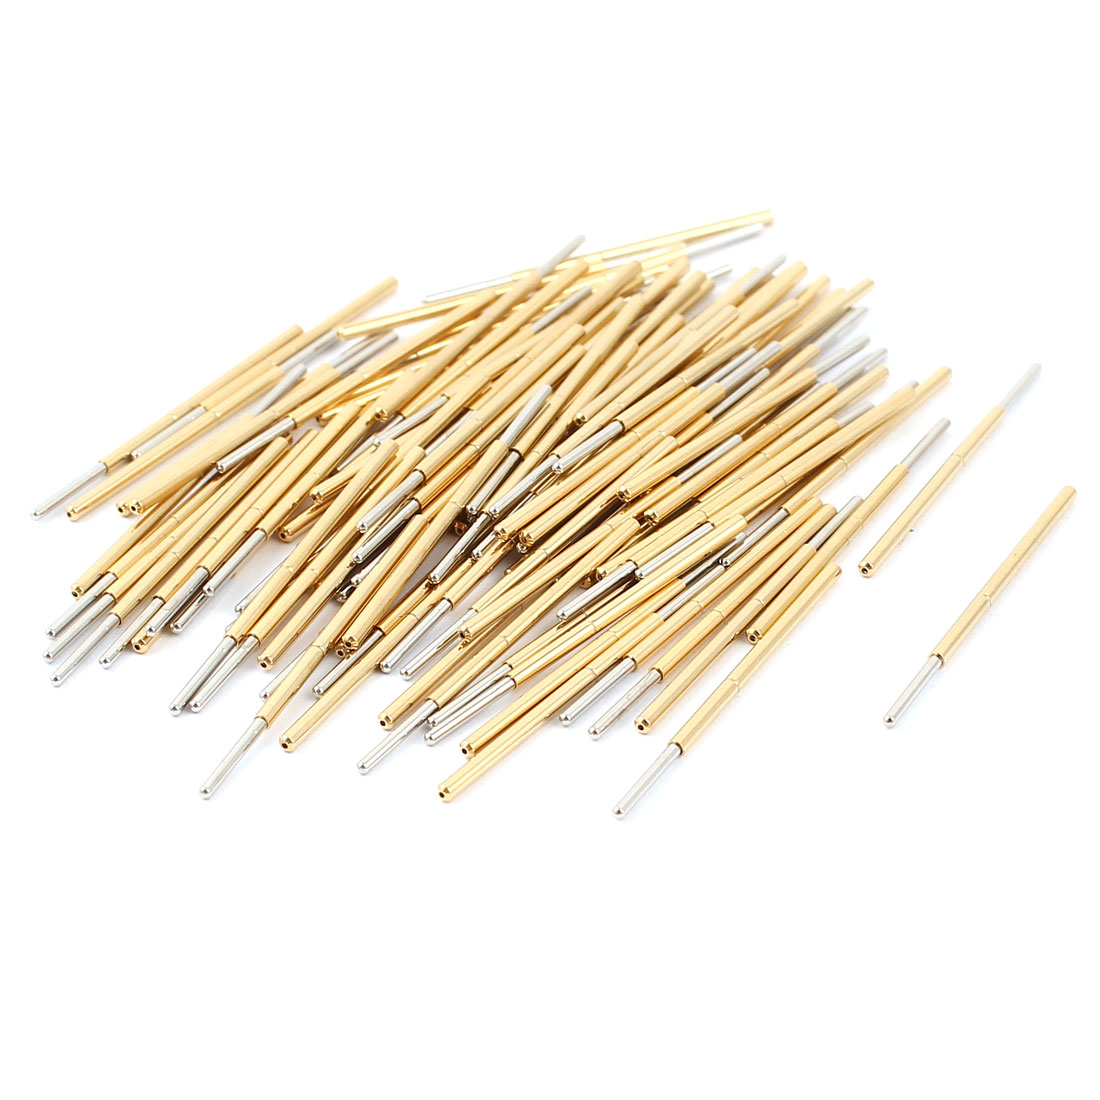 100 Pcs P100-J1 1.0mm Spherical Tip Spring Testing Probes Pin 33.3mm Length